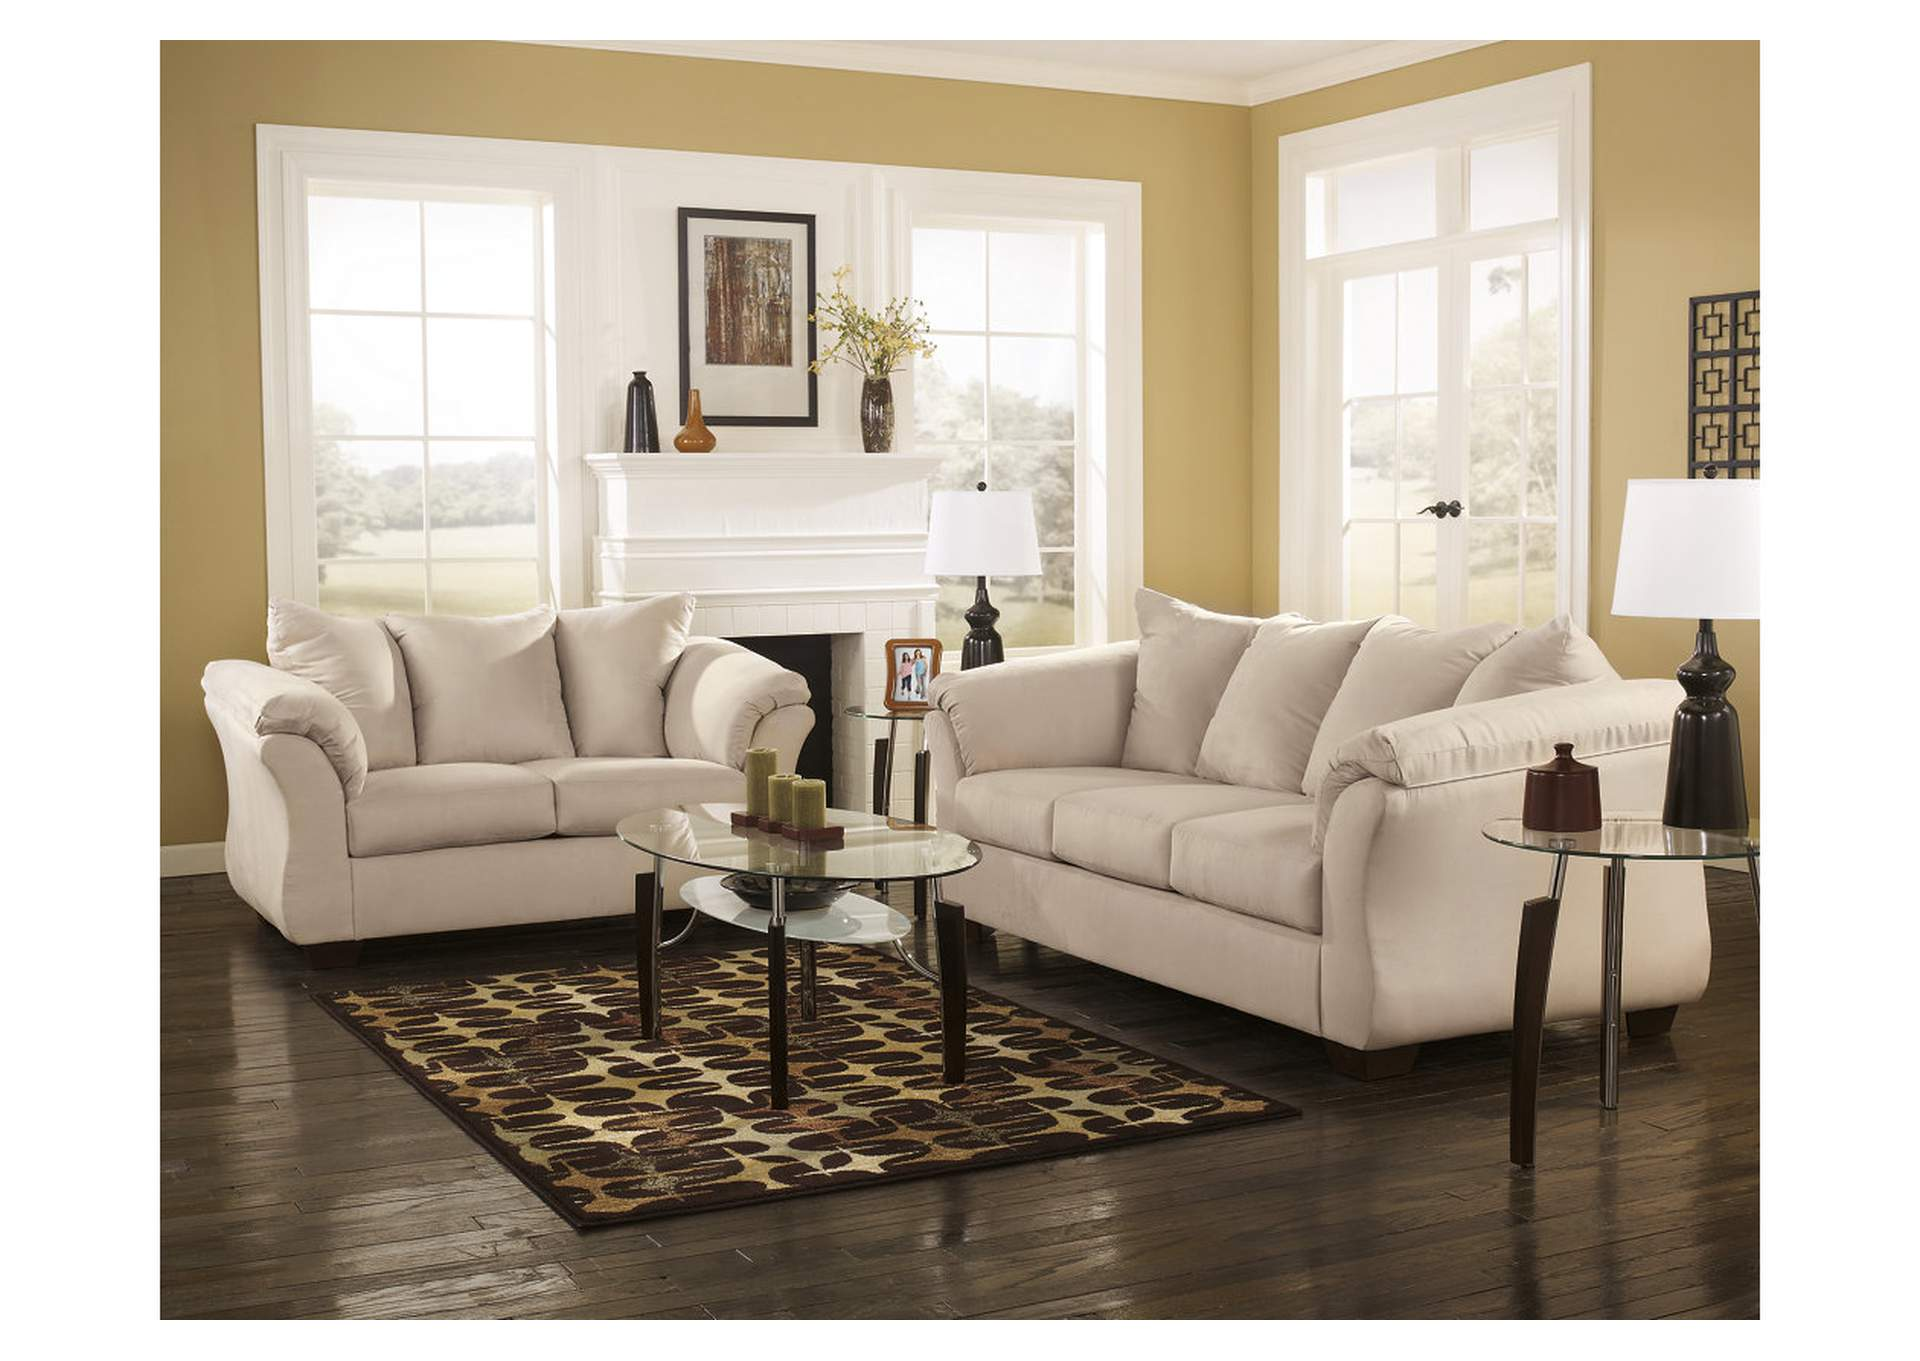 Darcy Stone Sofa & Loveseat,Signature Design By Ashley